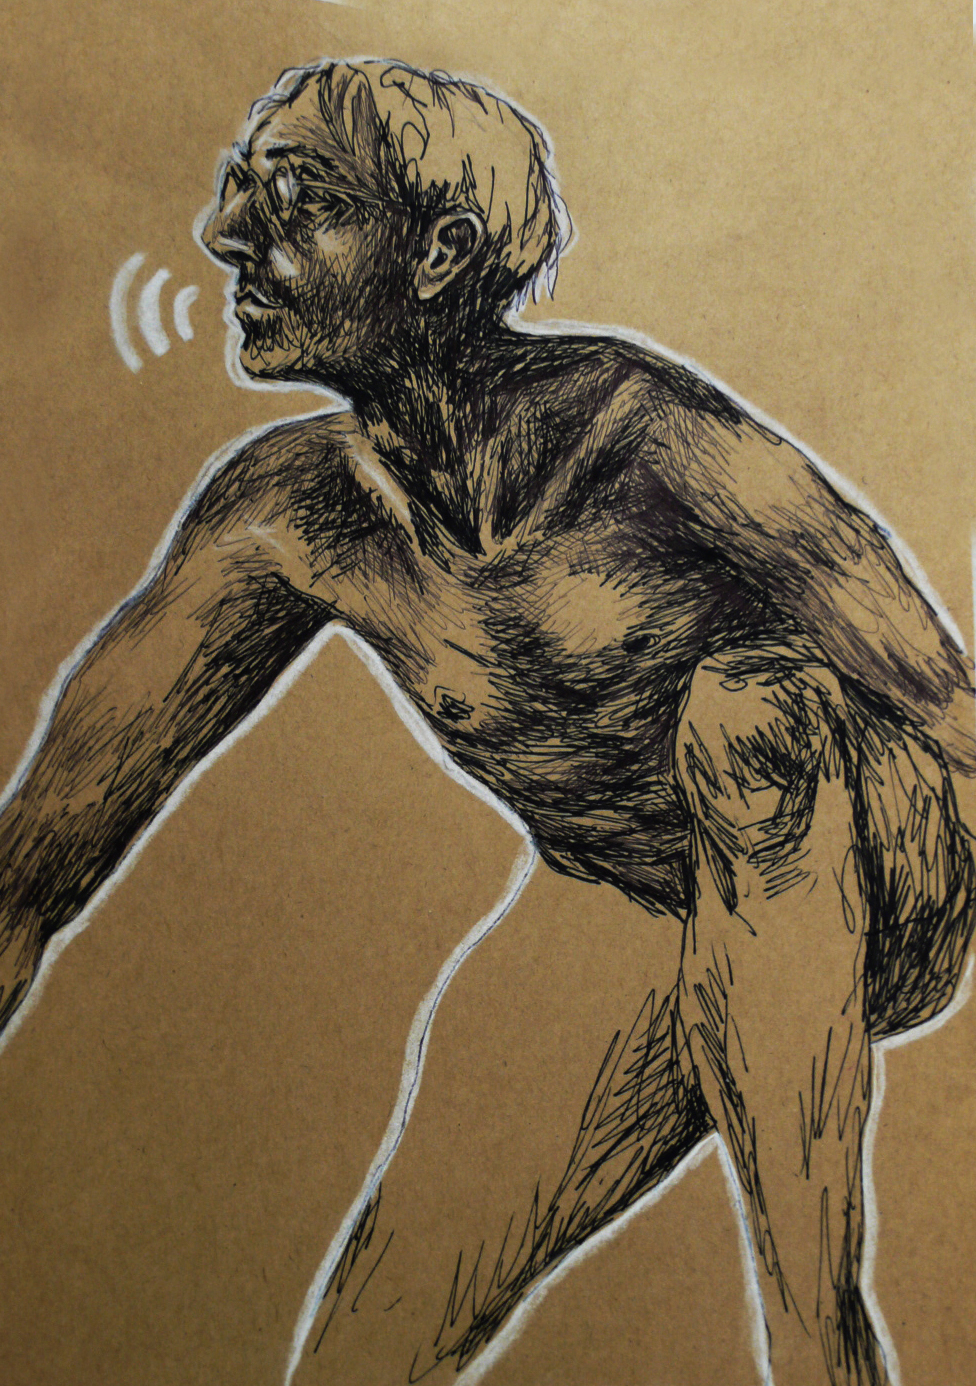 Fineliner on brown Paper, 2015